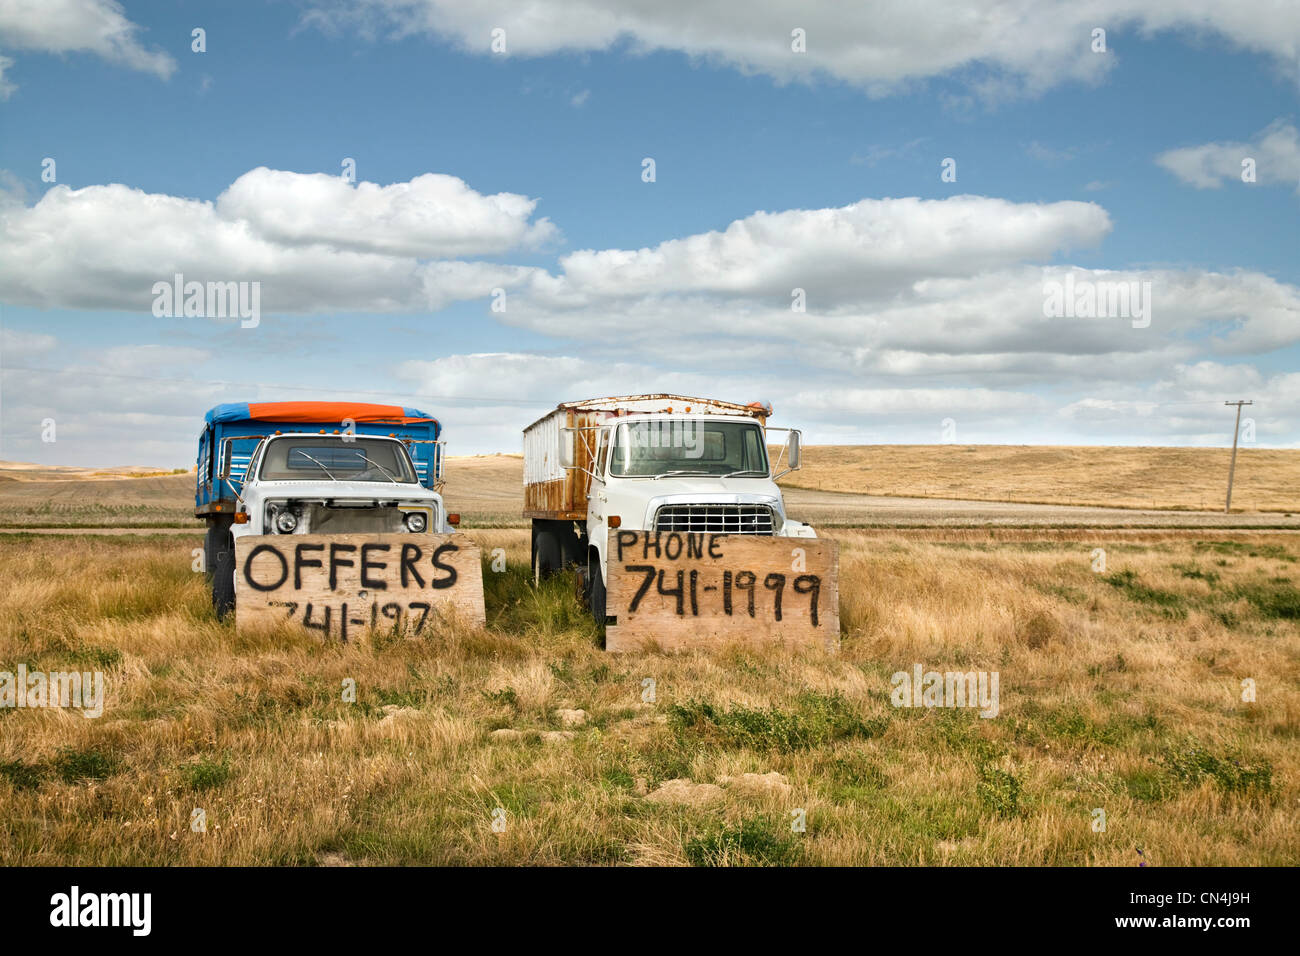 Old trucks for sale in a field Stock Photo: 47430701 - Alamy